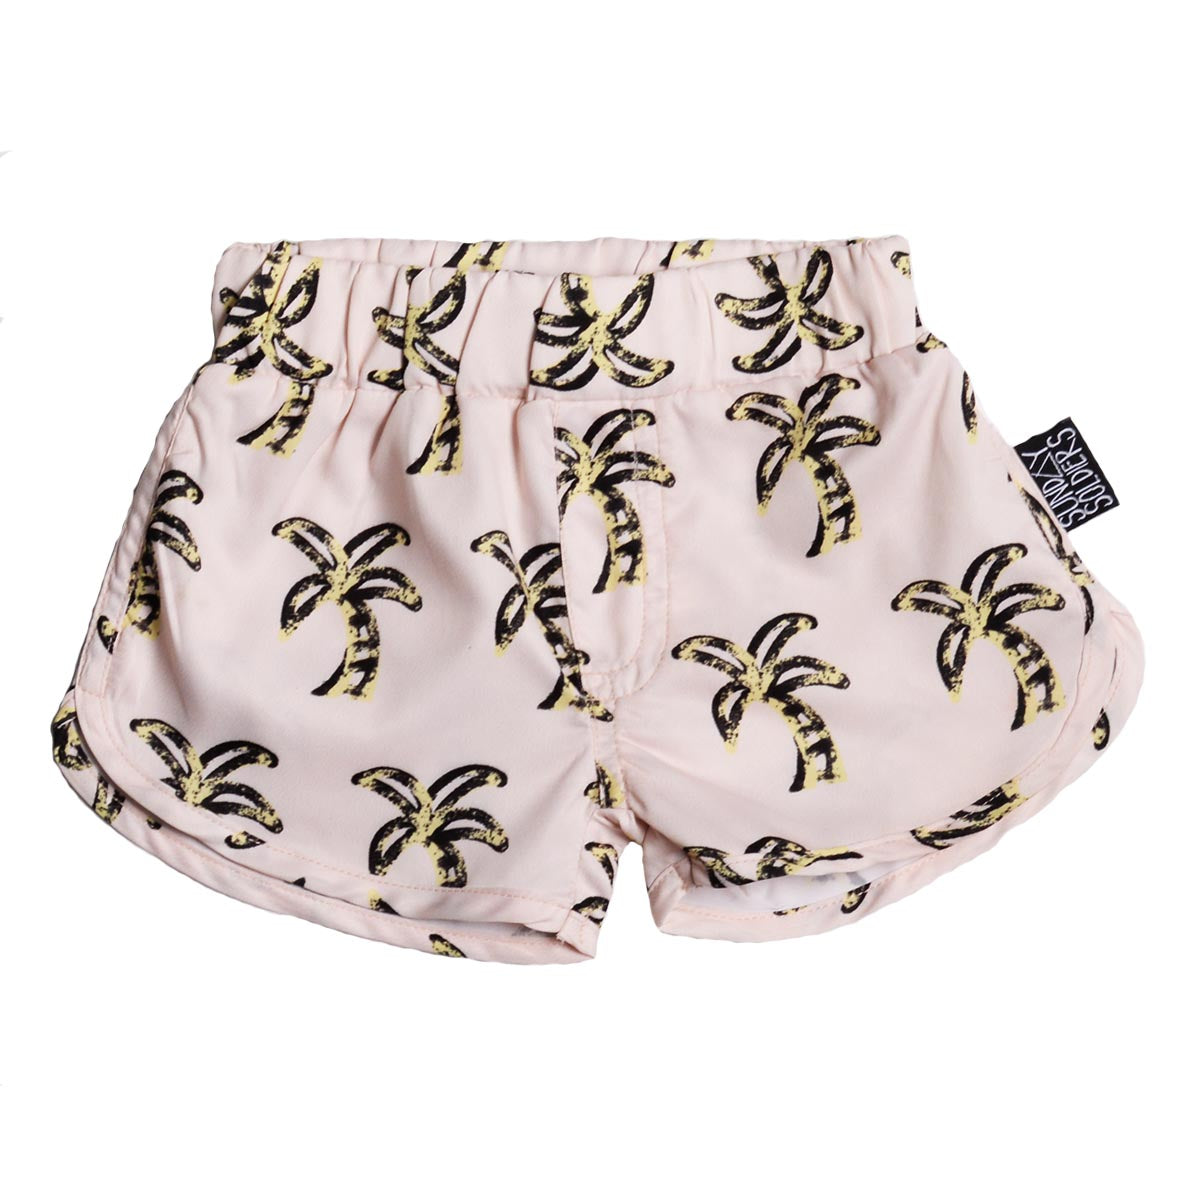 Retro palms shorties